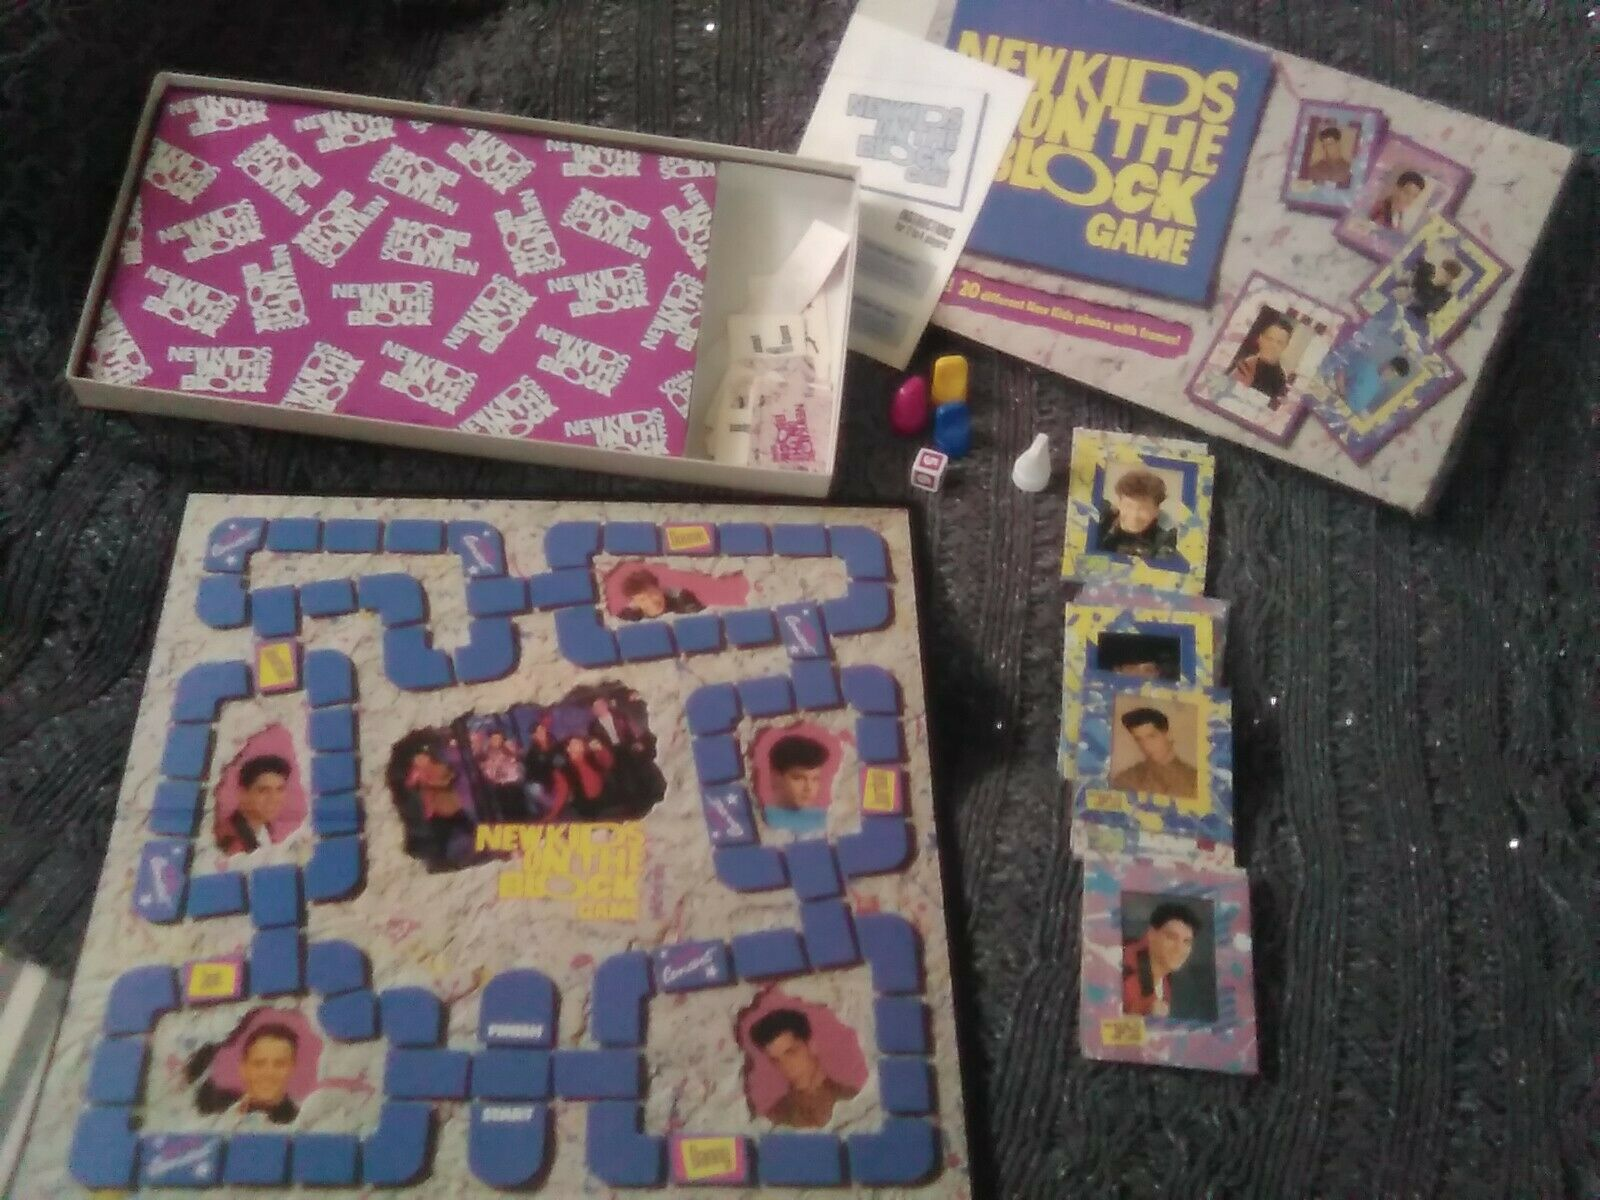 New Kids On The Block 1990 Board Game - $50.00